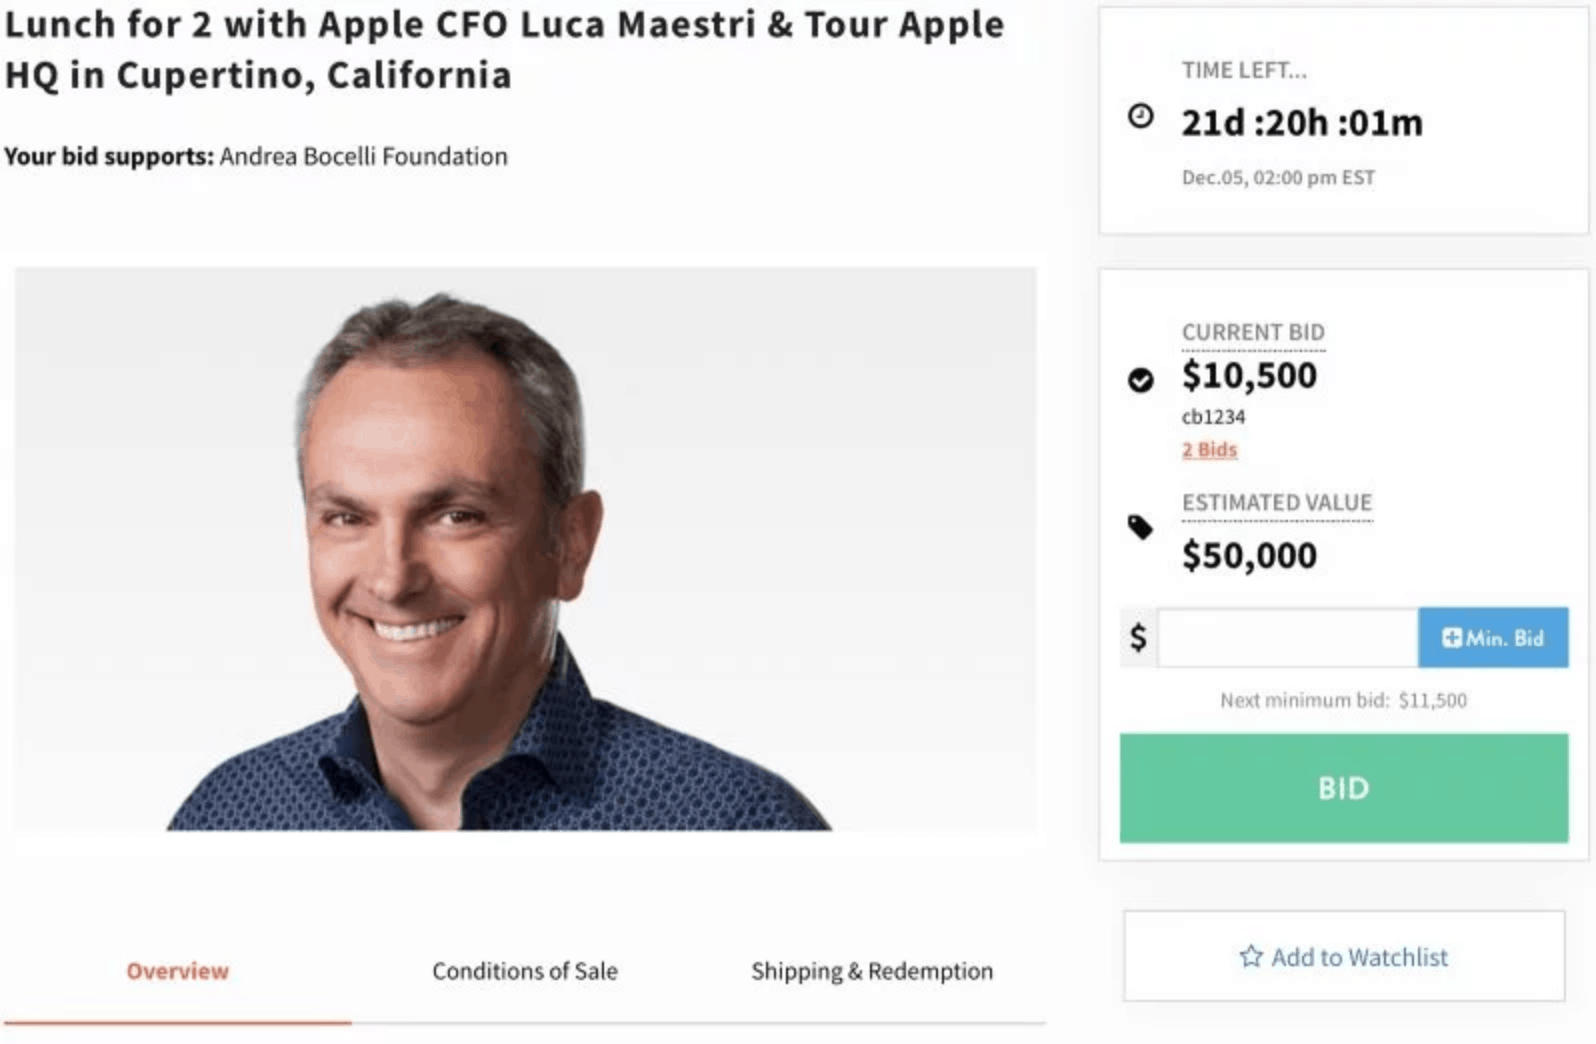 Apple CFO Sets Apple HQ Tour and Lunch for Charity